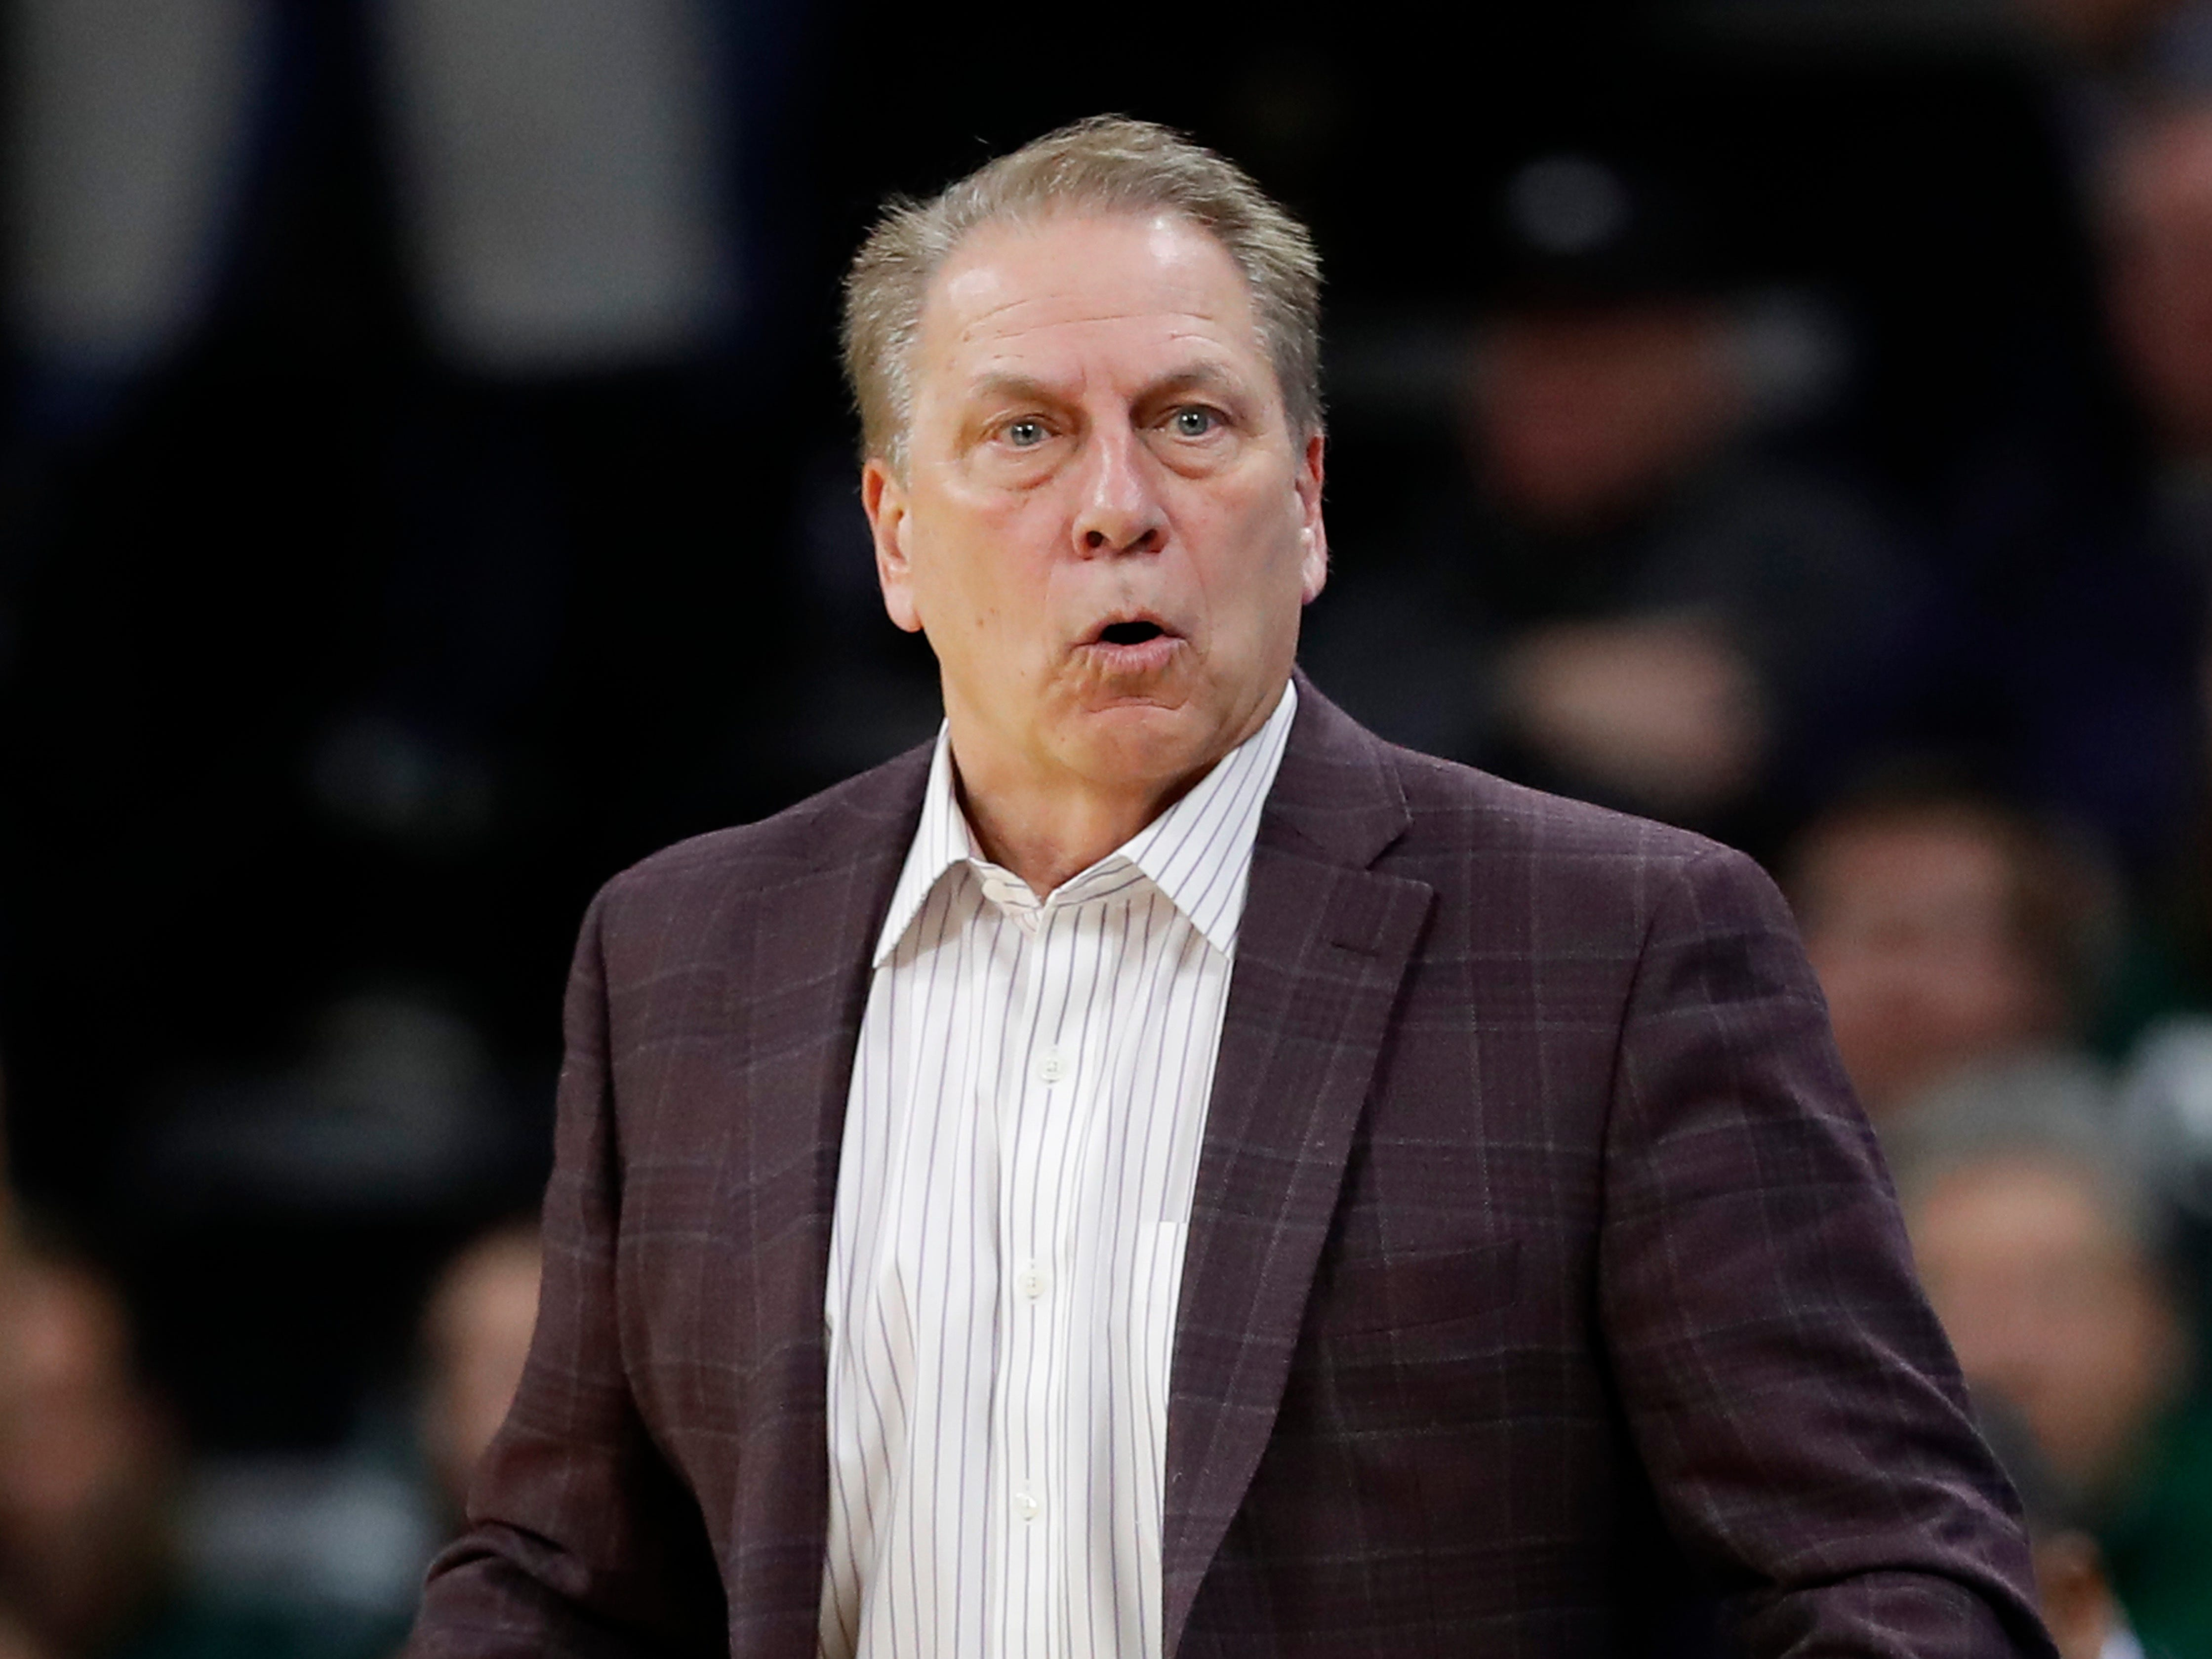 Michigan State coach Tom Izzo reacts to a call against his team during the first half of an NCAA college basketball game against Iowa, Thursday, Jan. 24, 2019, in Iowa City, Iowa.